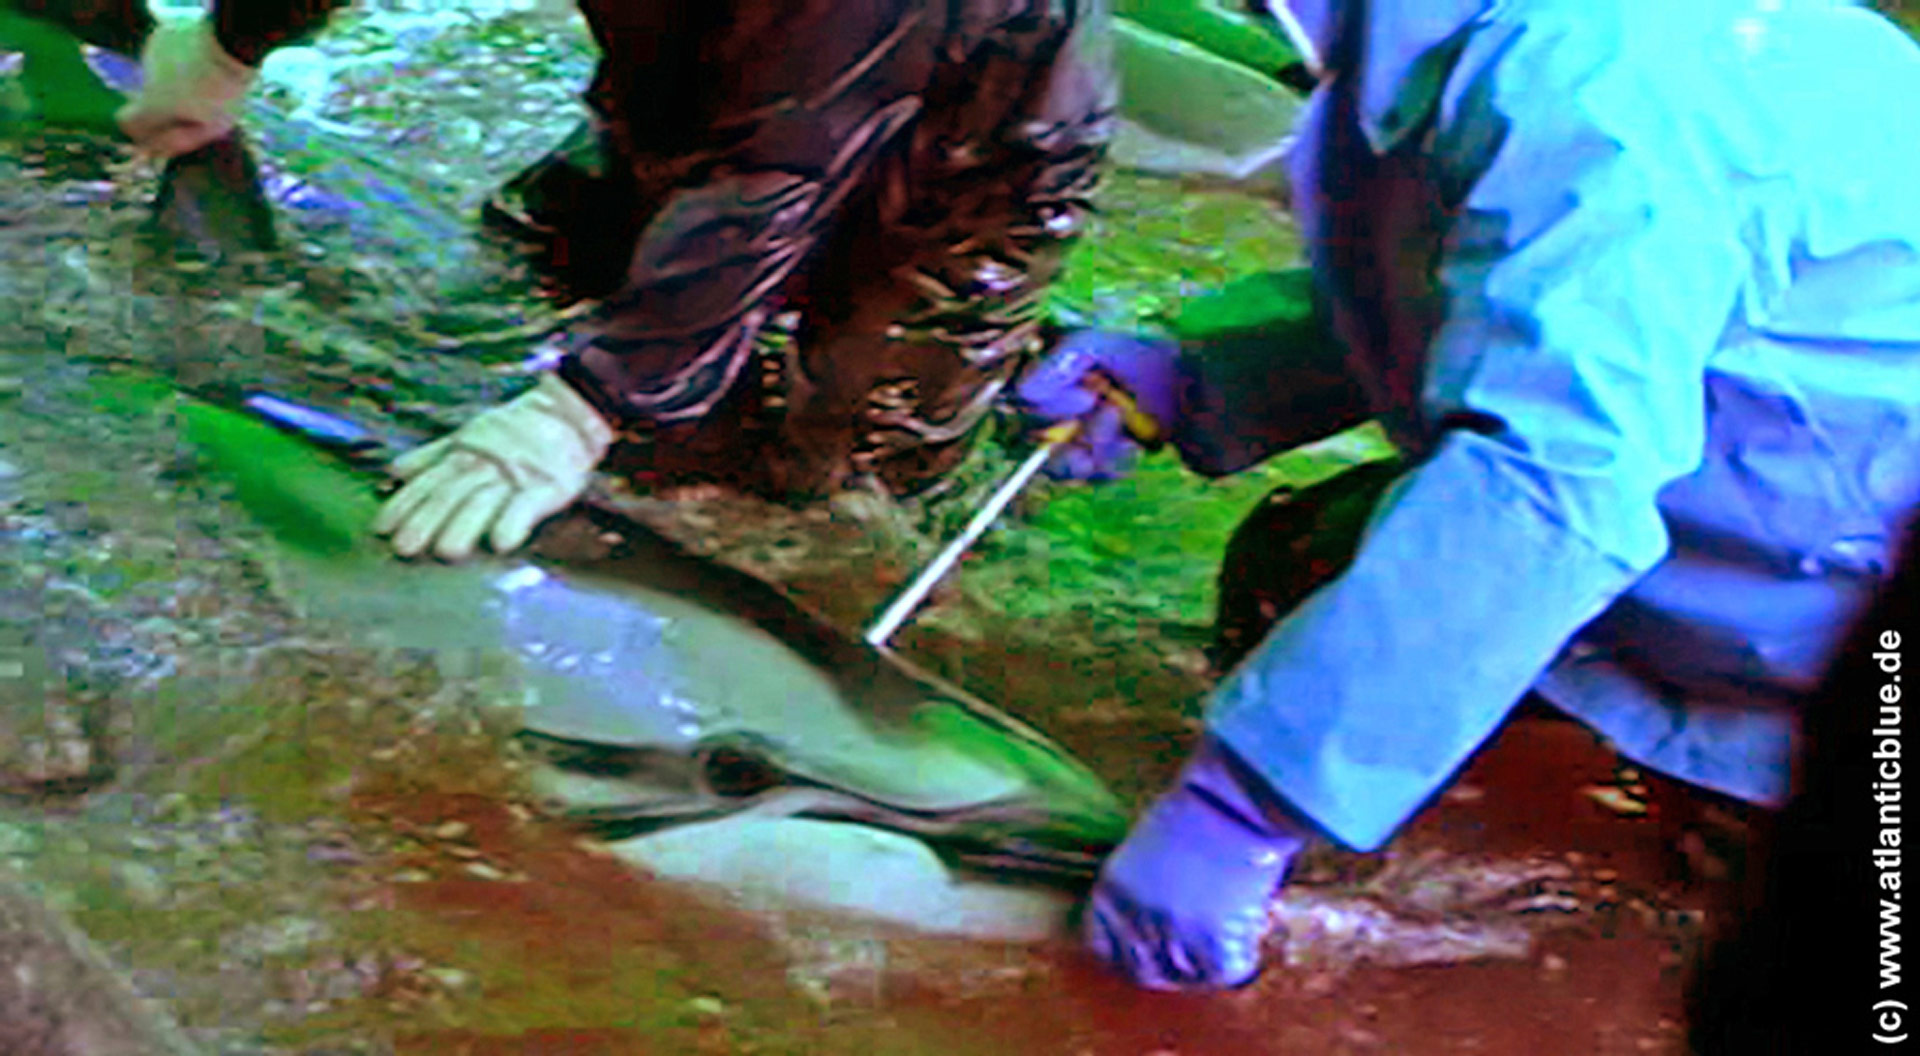 A hunter rams a sharp metal rod into the dolphin's spinal column causing paralysis and eventual death. This slow and painful method of killing is condemned by scientists as cruel and inhumane. Photo: Atlanticblue